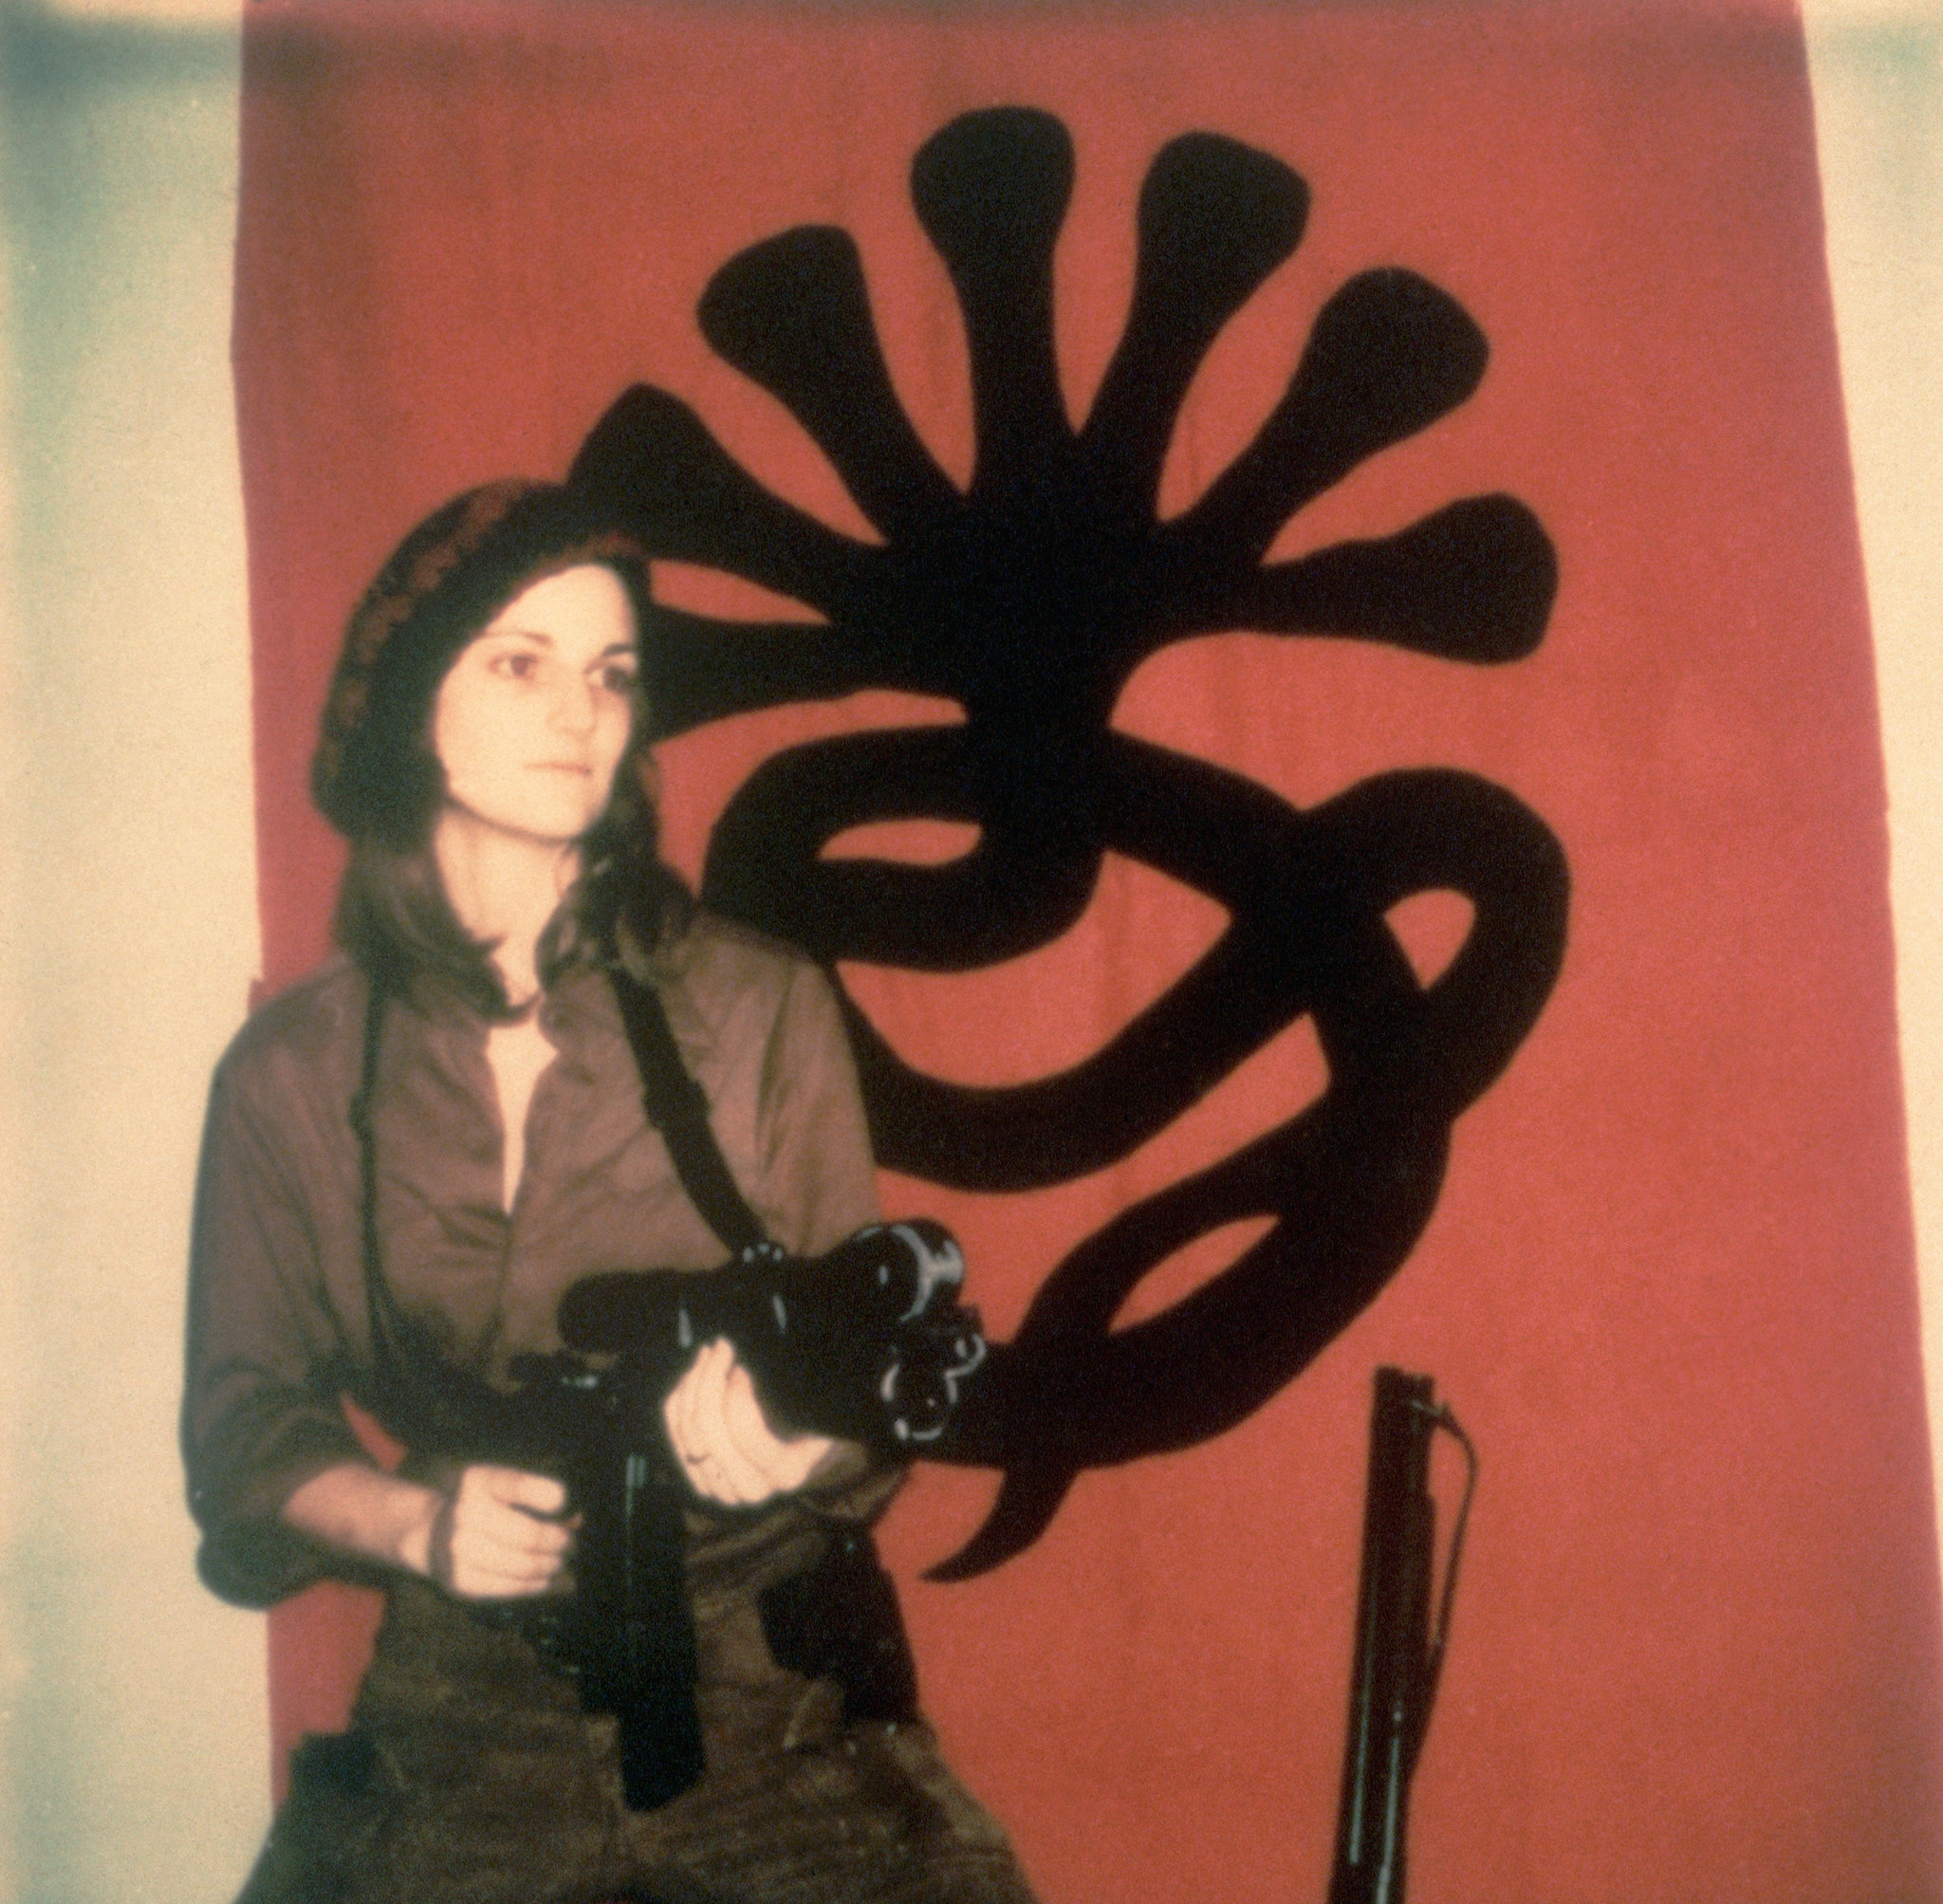 Patty Hearst, armed and impassive